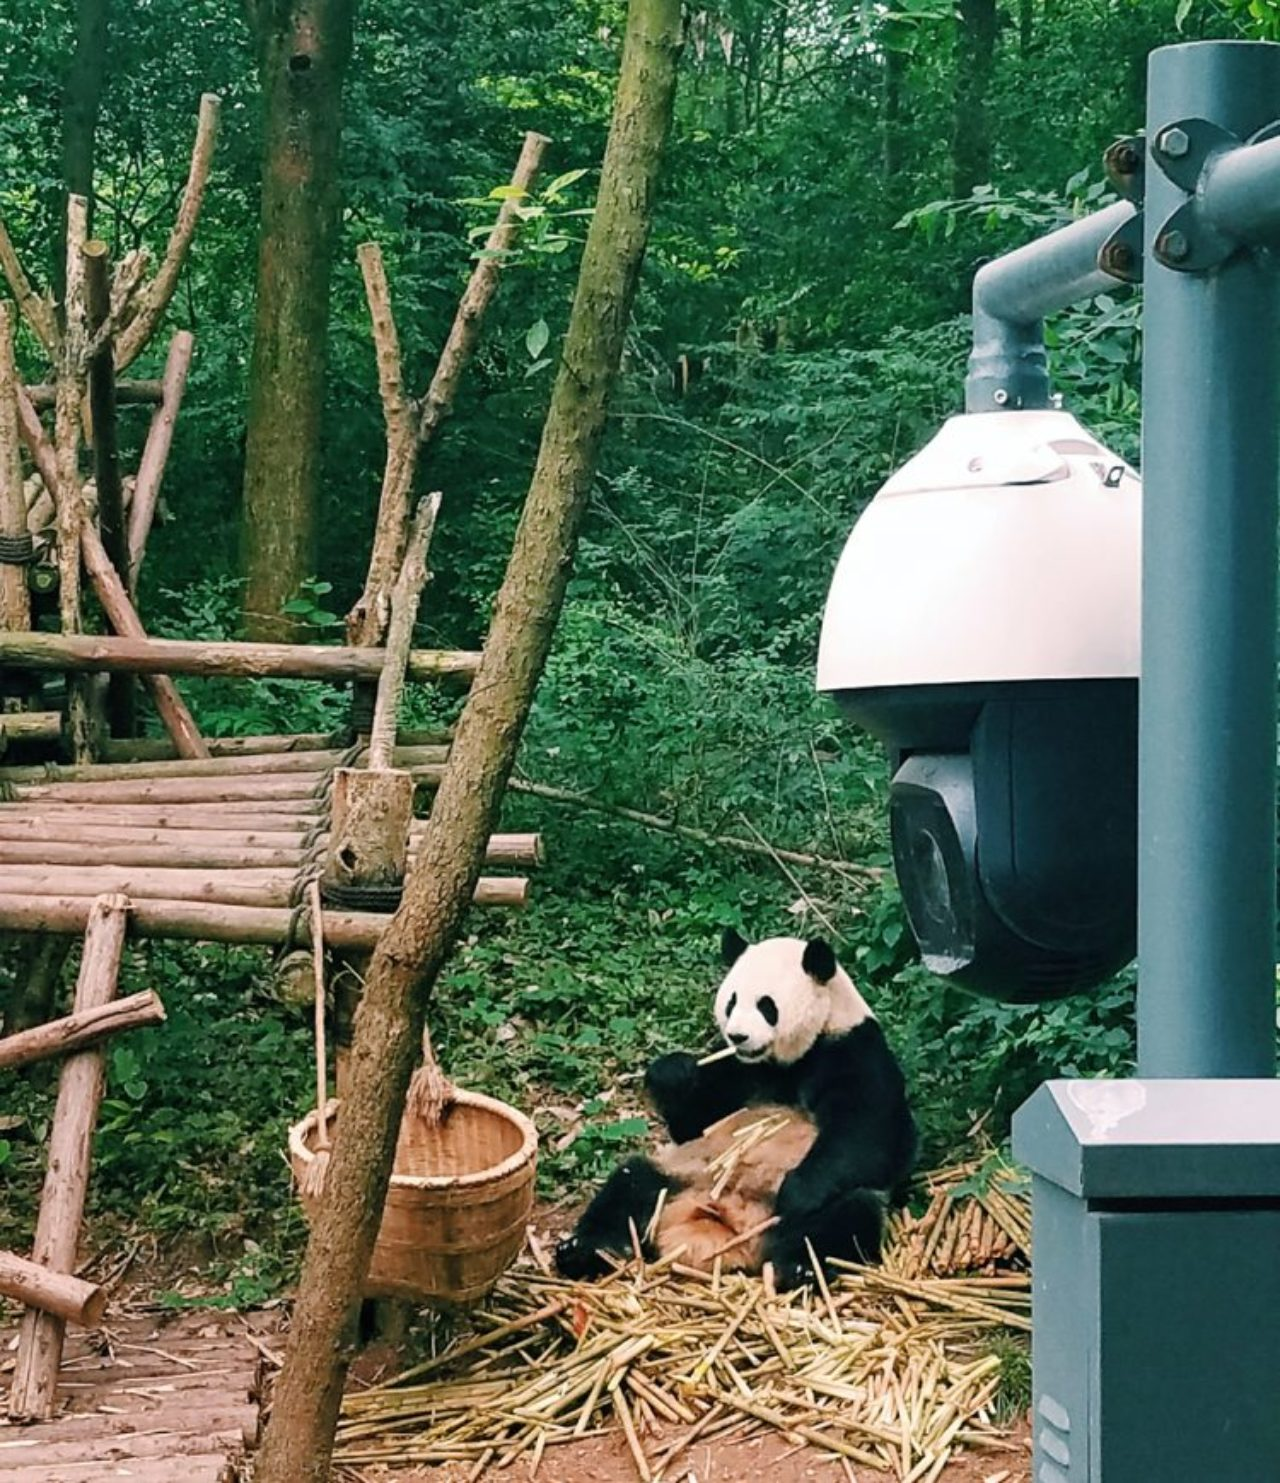 The Chengdu Research Base of Giant Panda Breeding protects the species and allows the black-and-white bears to live in their own habitats.